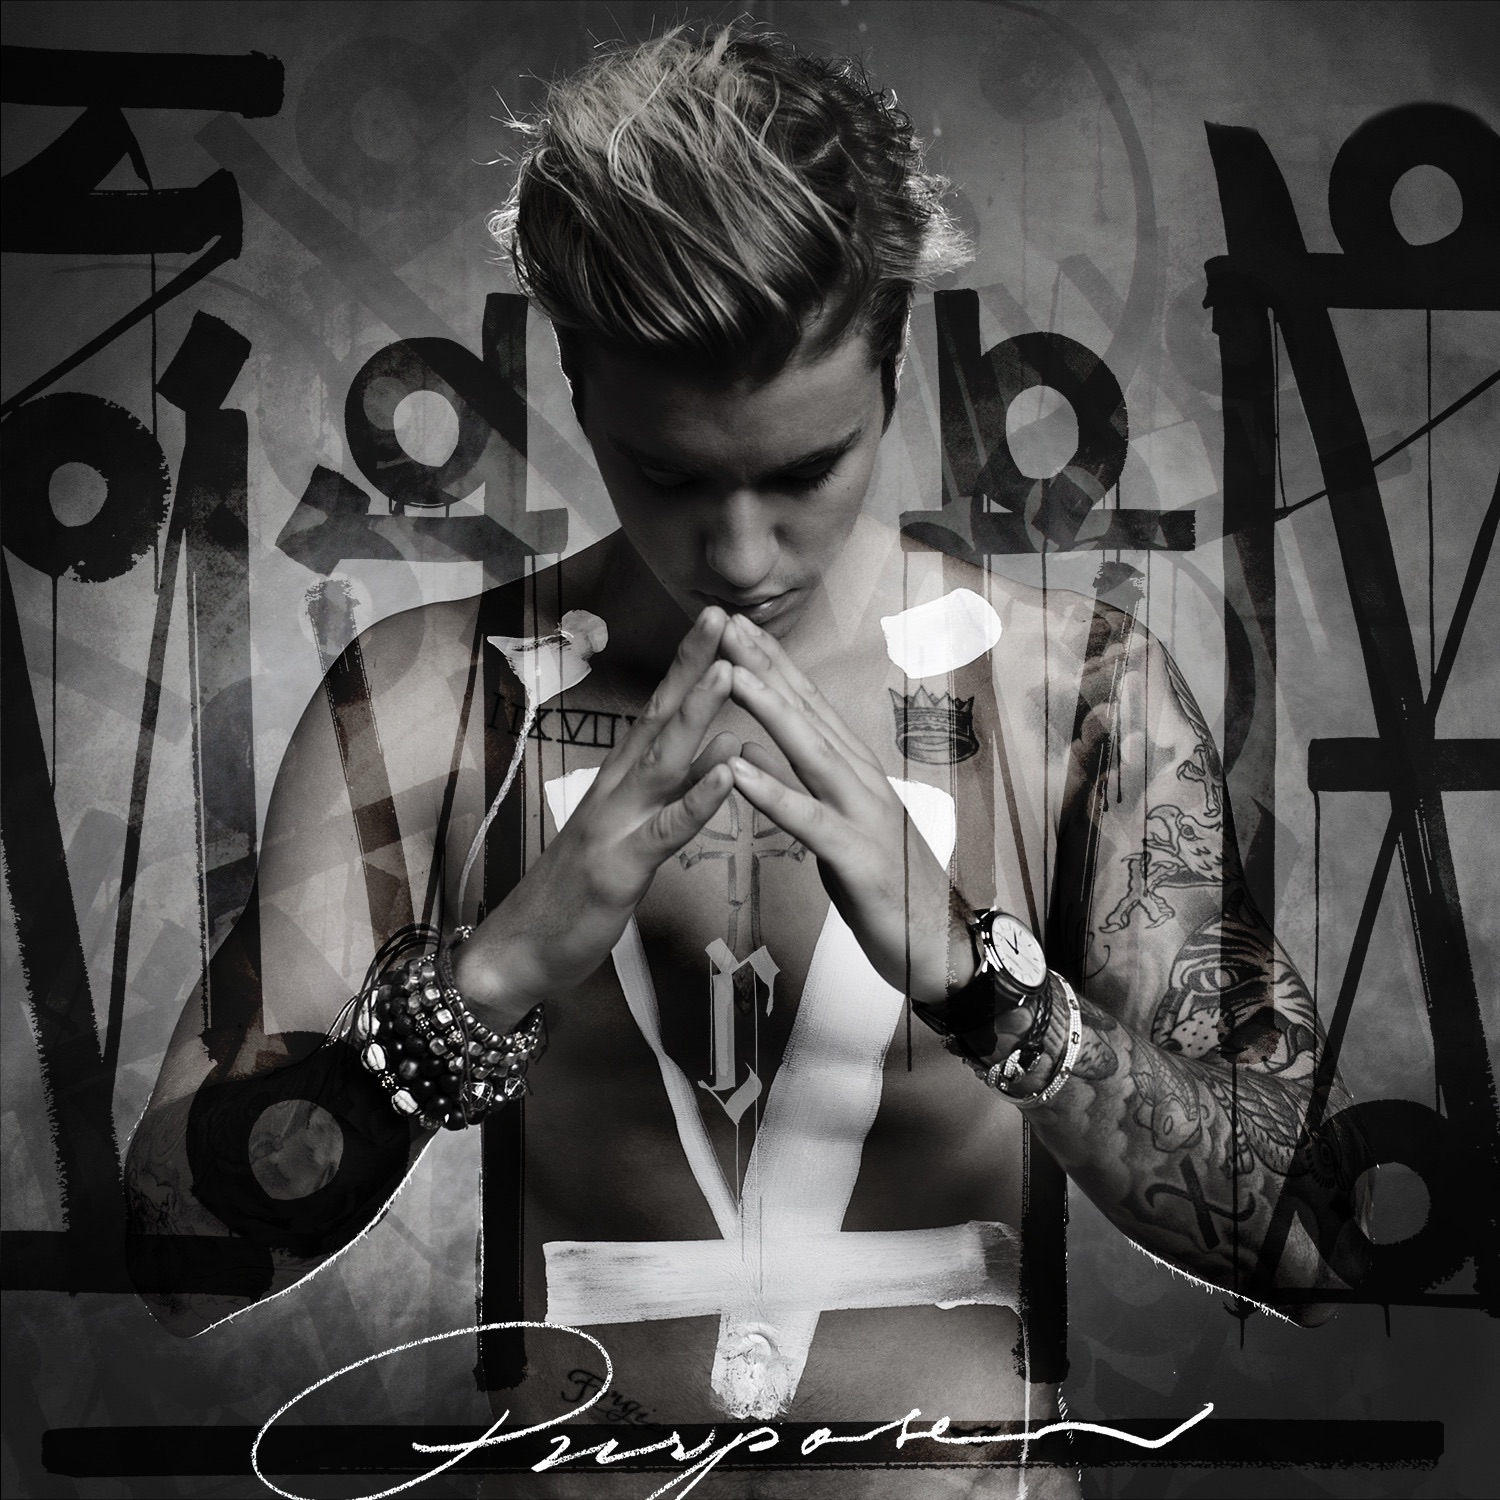 What Do You Mean? (Remix)